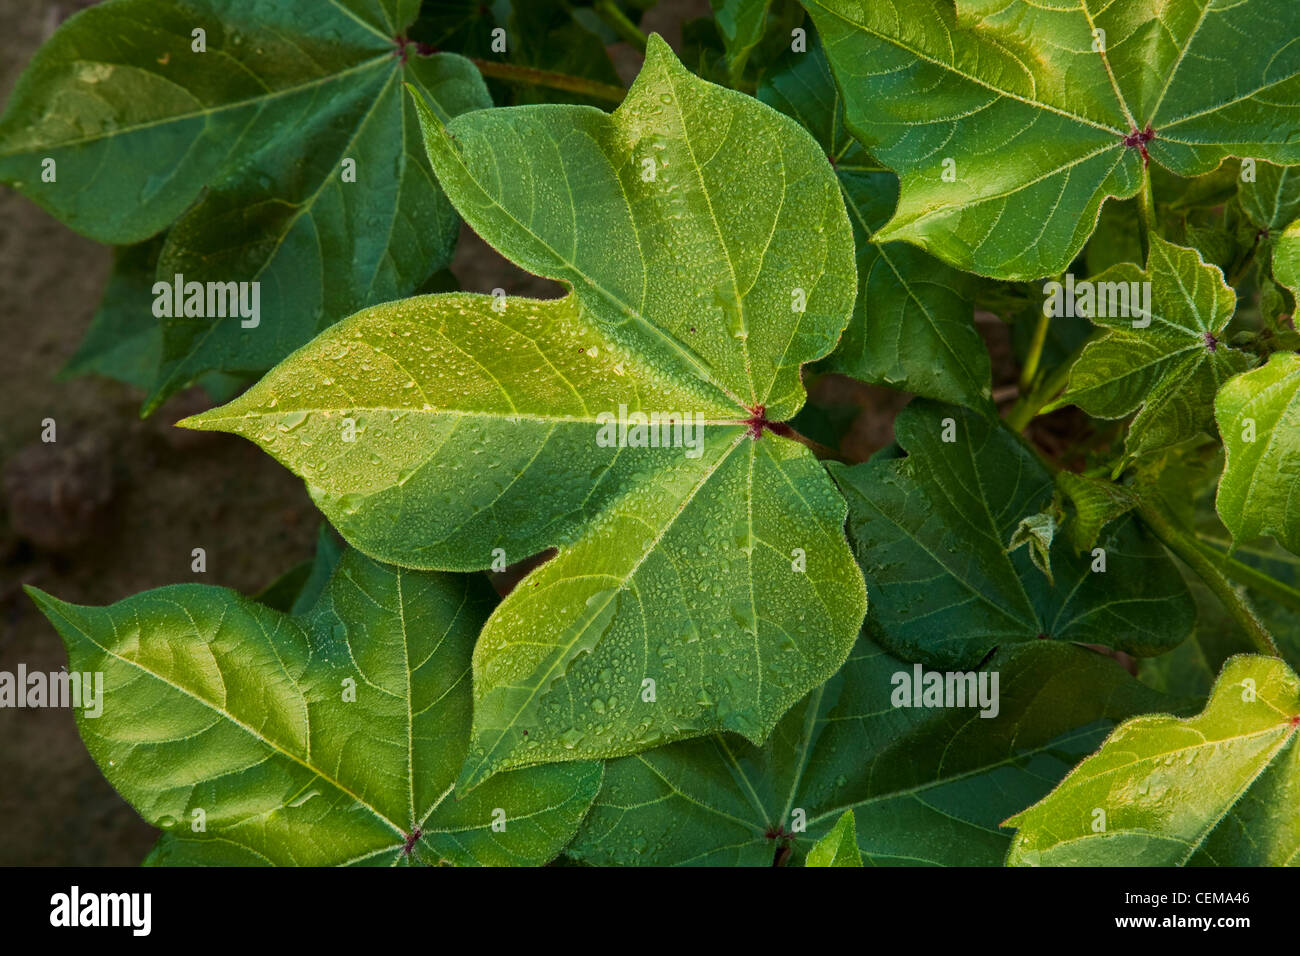 Early morning light and dew drops on healthy mid growth cotton foliage at the peak of boll set / near England, Arkansas, - Stock Image